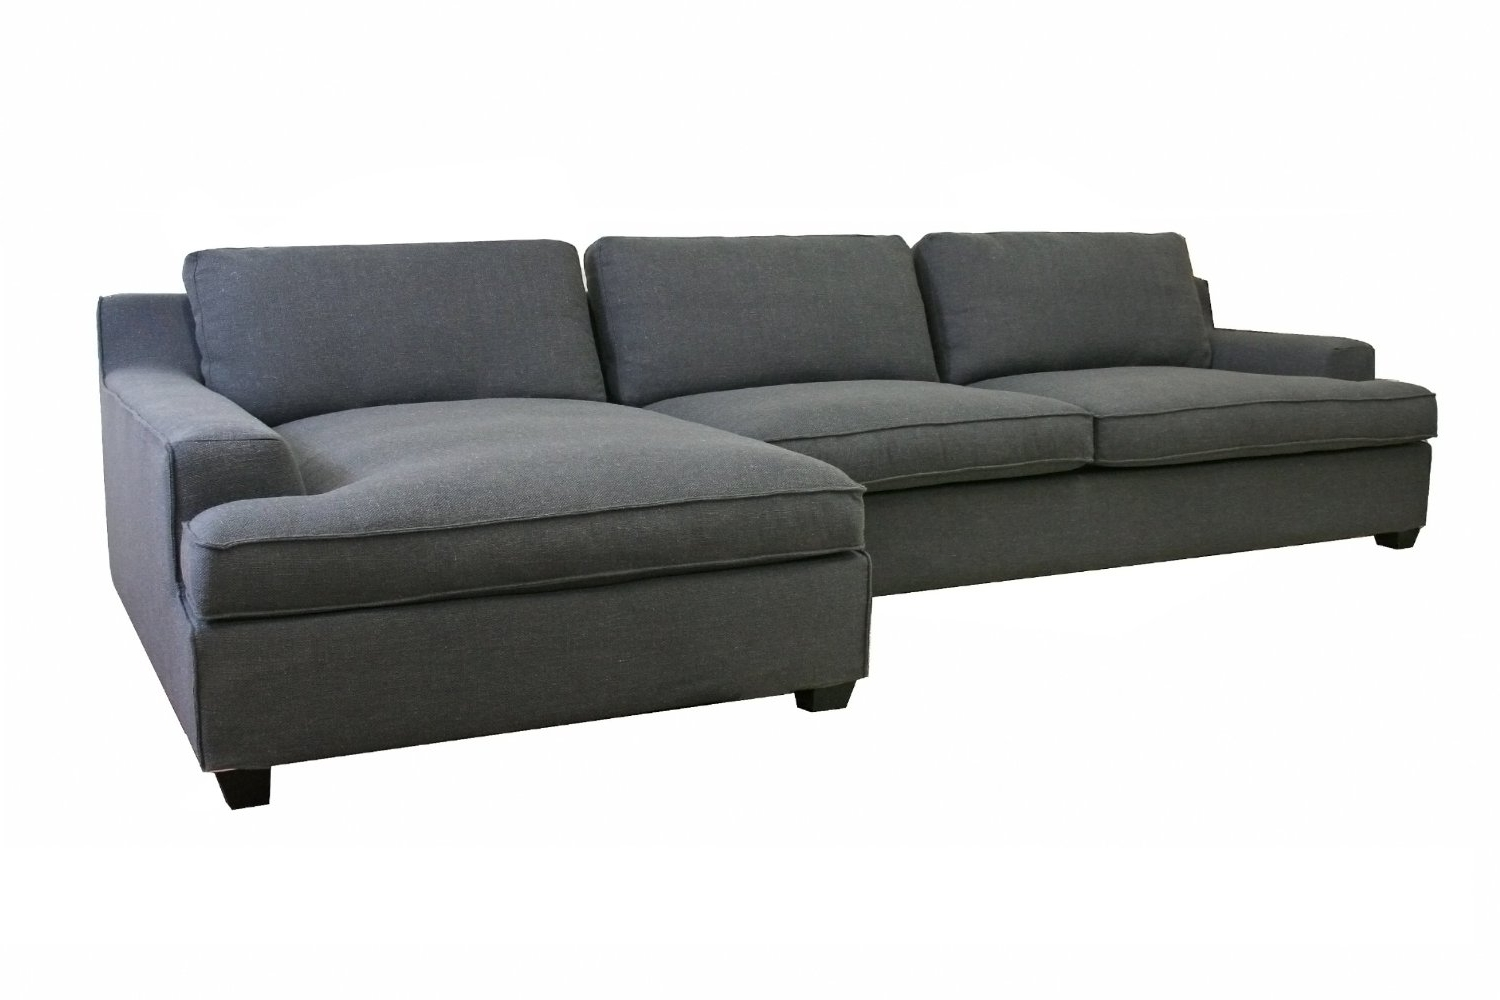 Current Couches With Chaise Lounge Intended For Awesome Couch With Chaise Lounge 81 On Sofas And Couches Ideas (View 7 of 15)